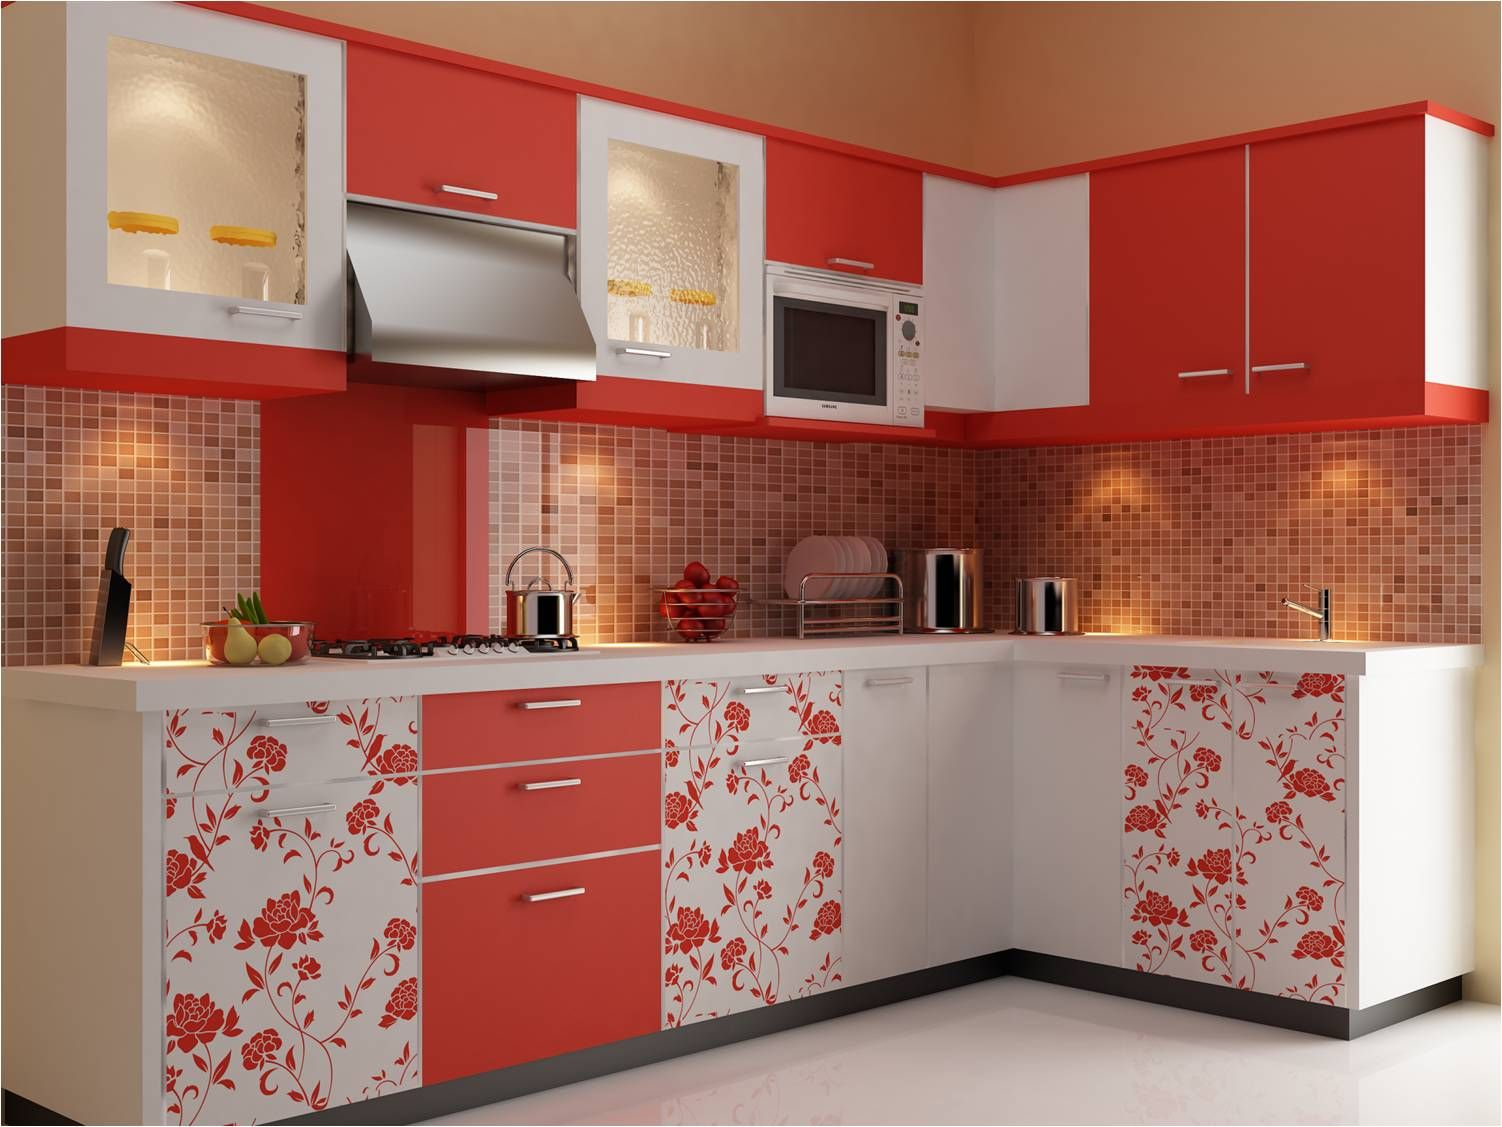 Kitchen Design Exciting Pink Modular Kitchen Design Furniture With Floral And Brown Square Tile Wall Decor Ideas Feats Red White Cabinetary Also Modern